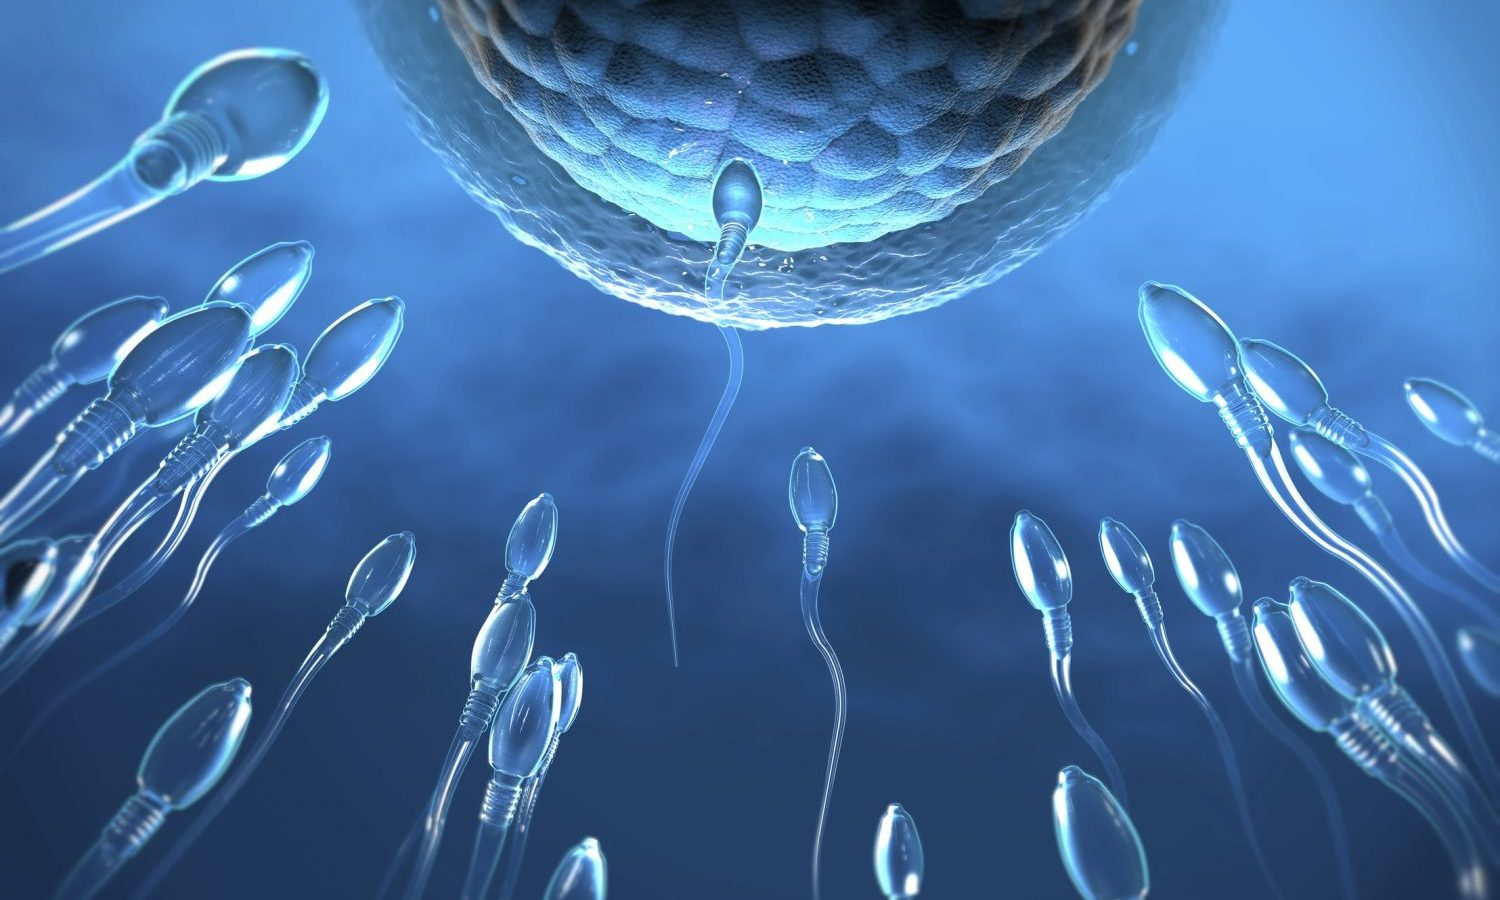 Does Using Cannabis Decrease Your Sperm Count?